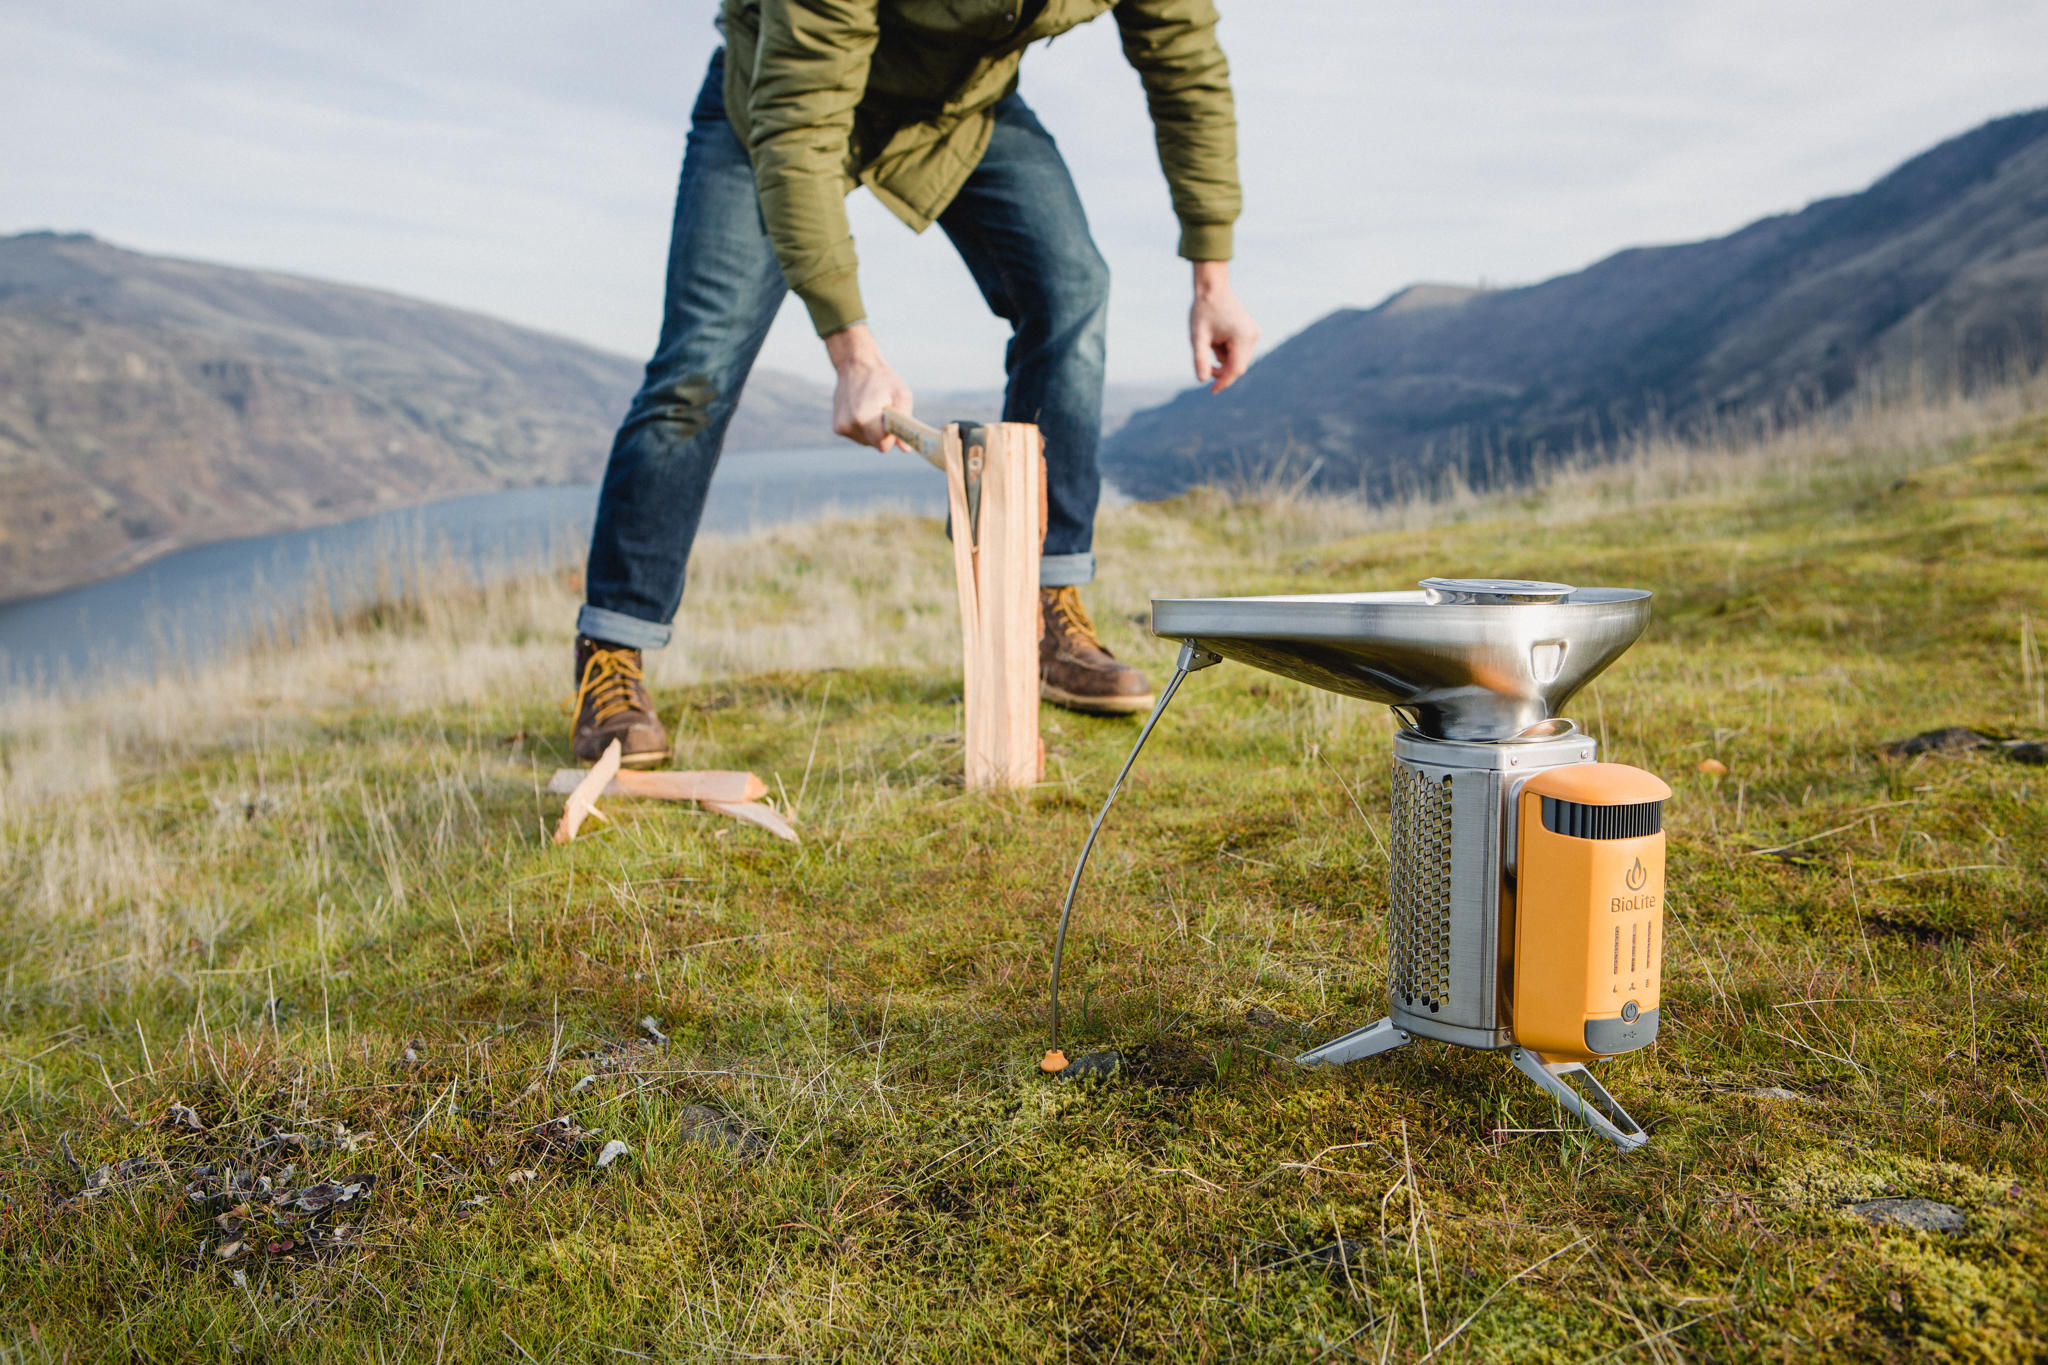 Review of the Biolite Camp Stove 2 Bundle - The Beans and Rice Commercial Outdoor Adventure & Lifestyle Content